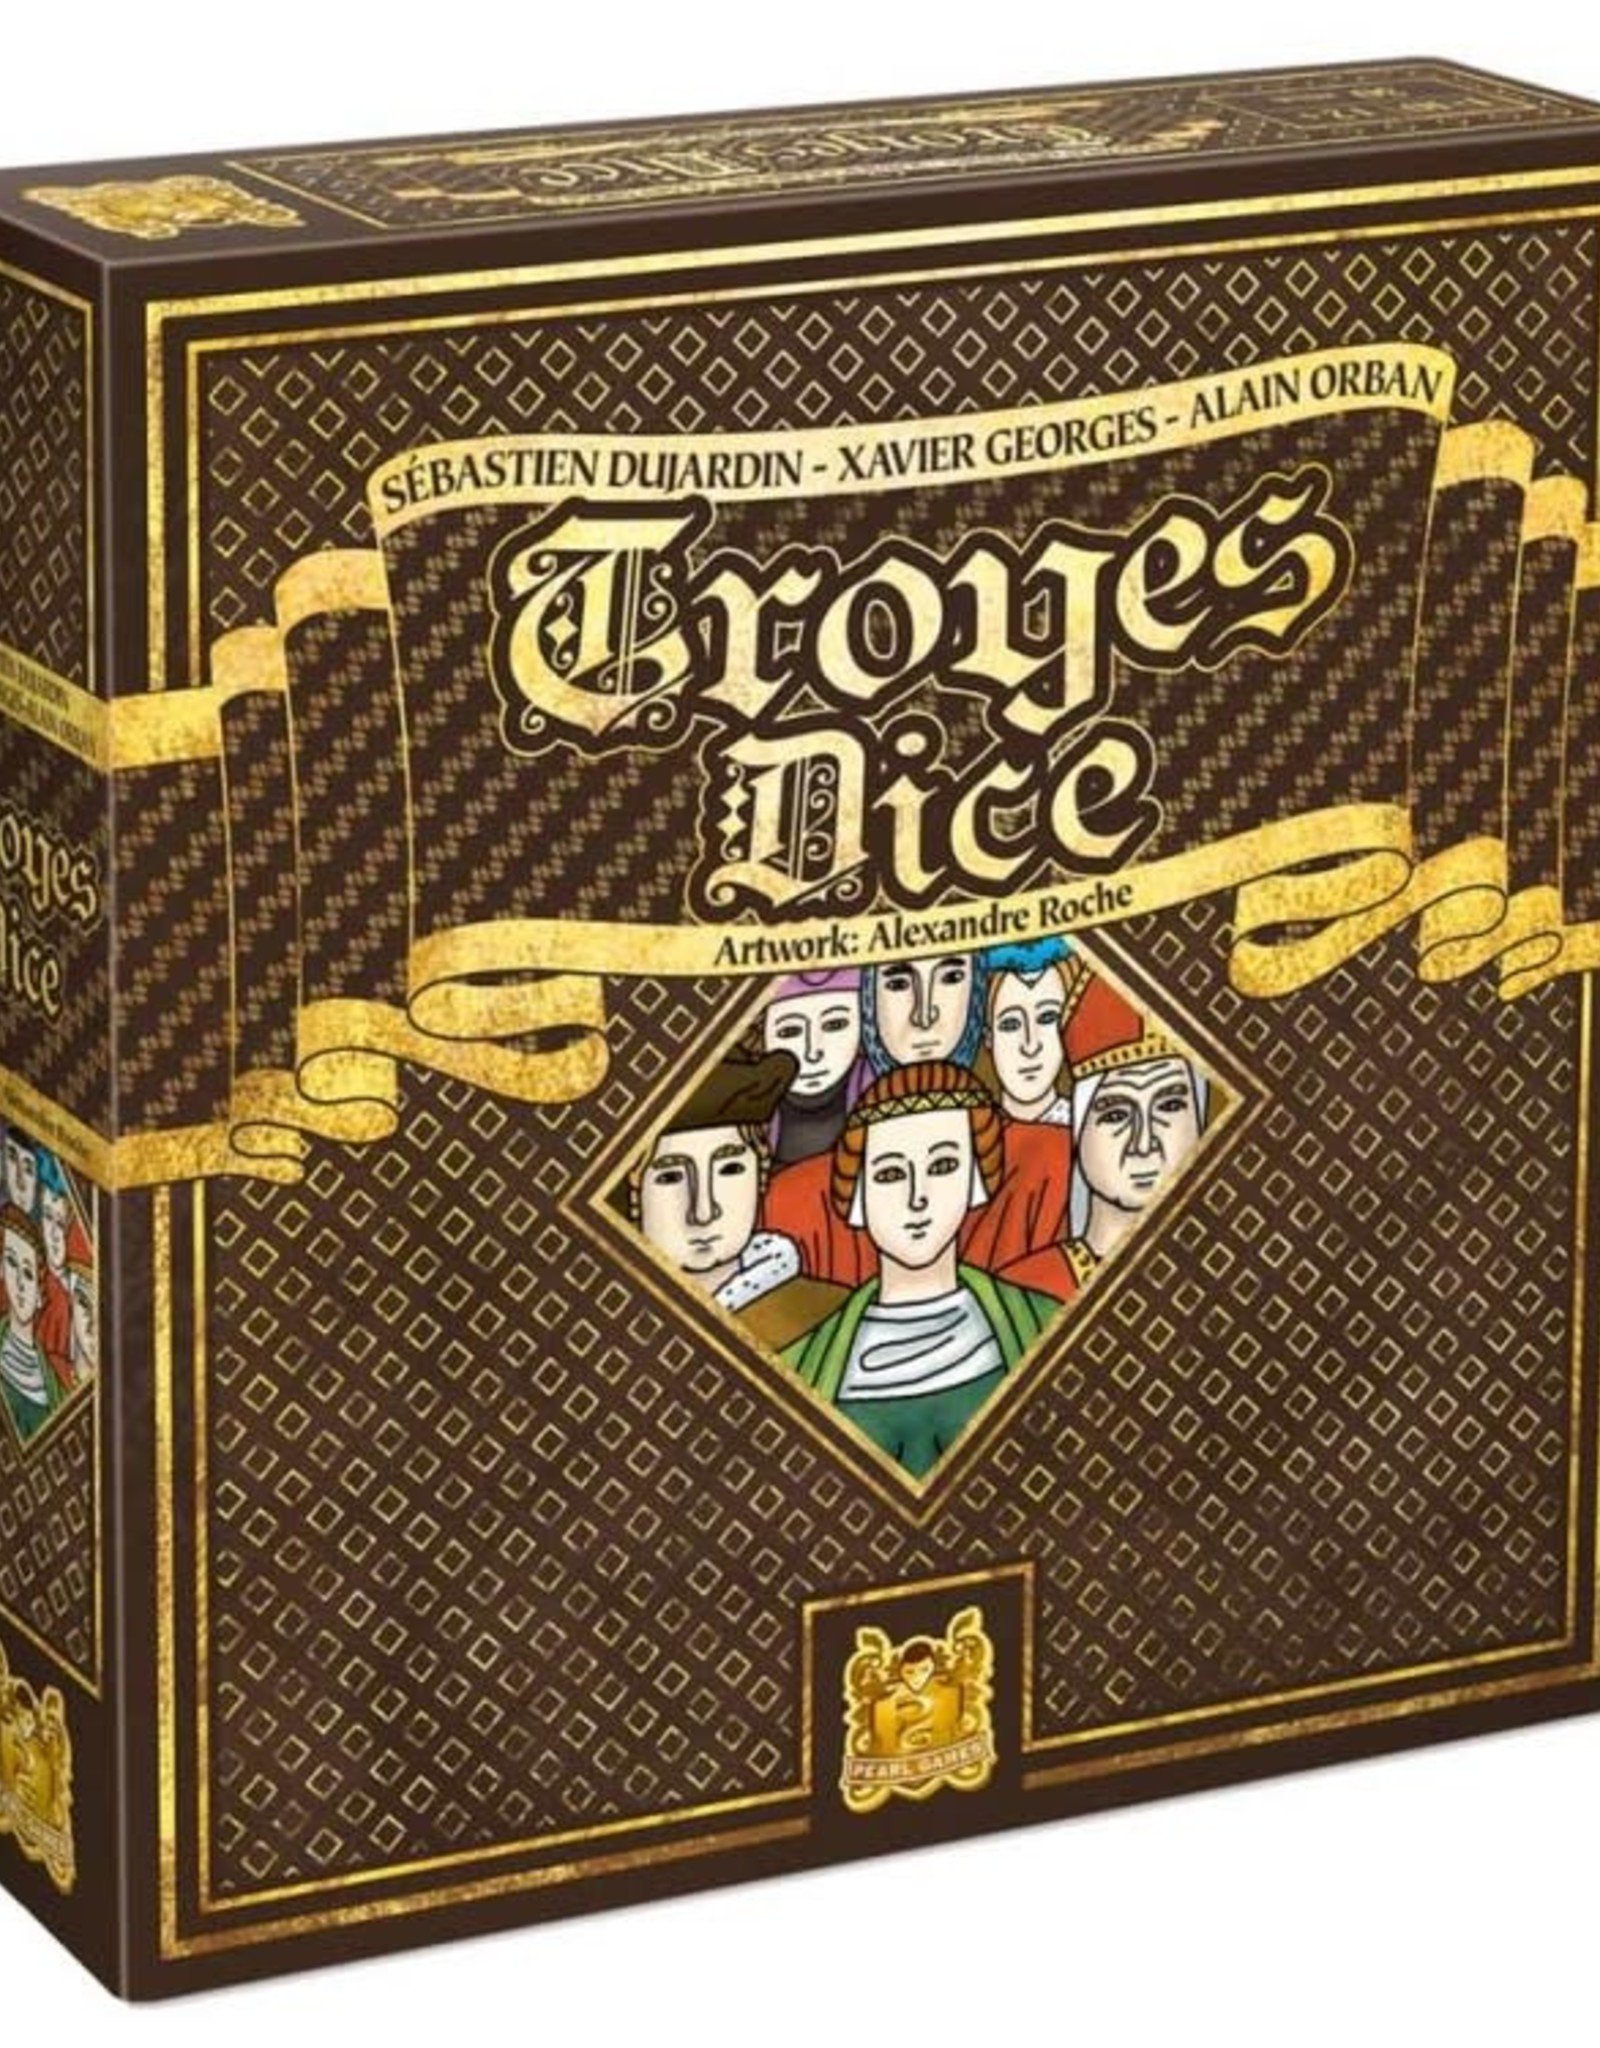 RENTAL - Troyes Dice 1 lb 8.7 oz